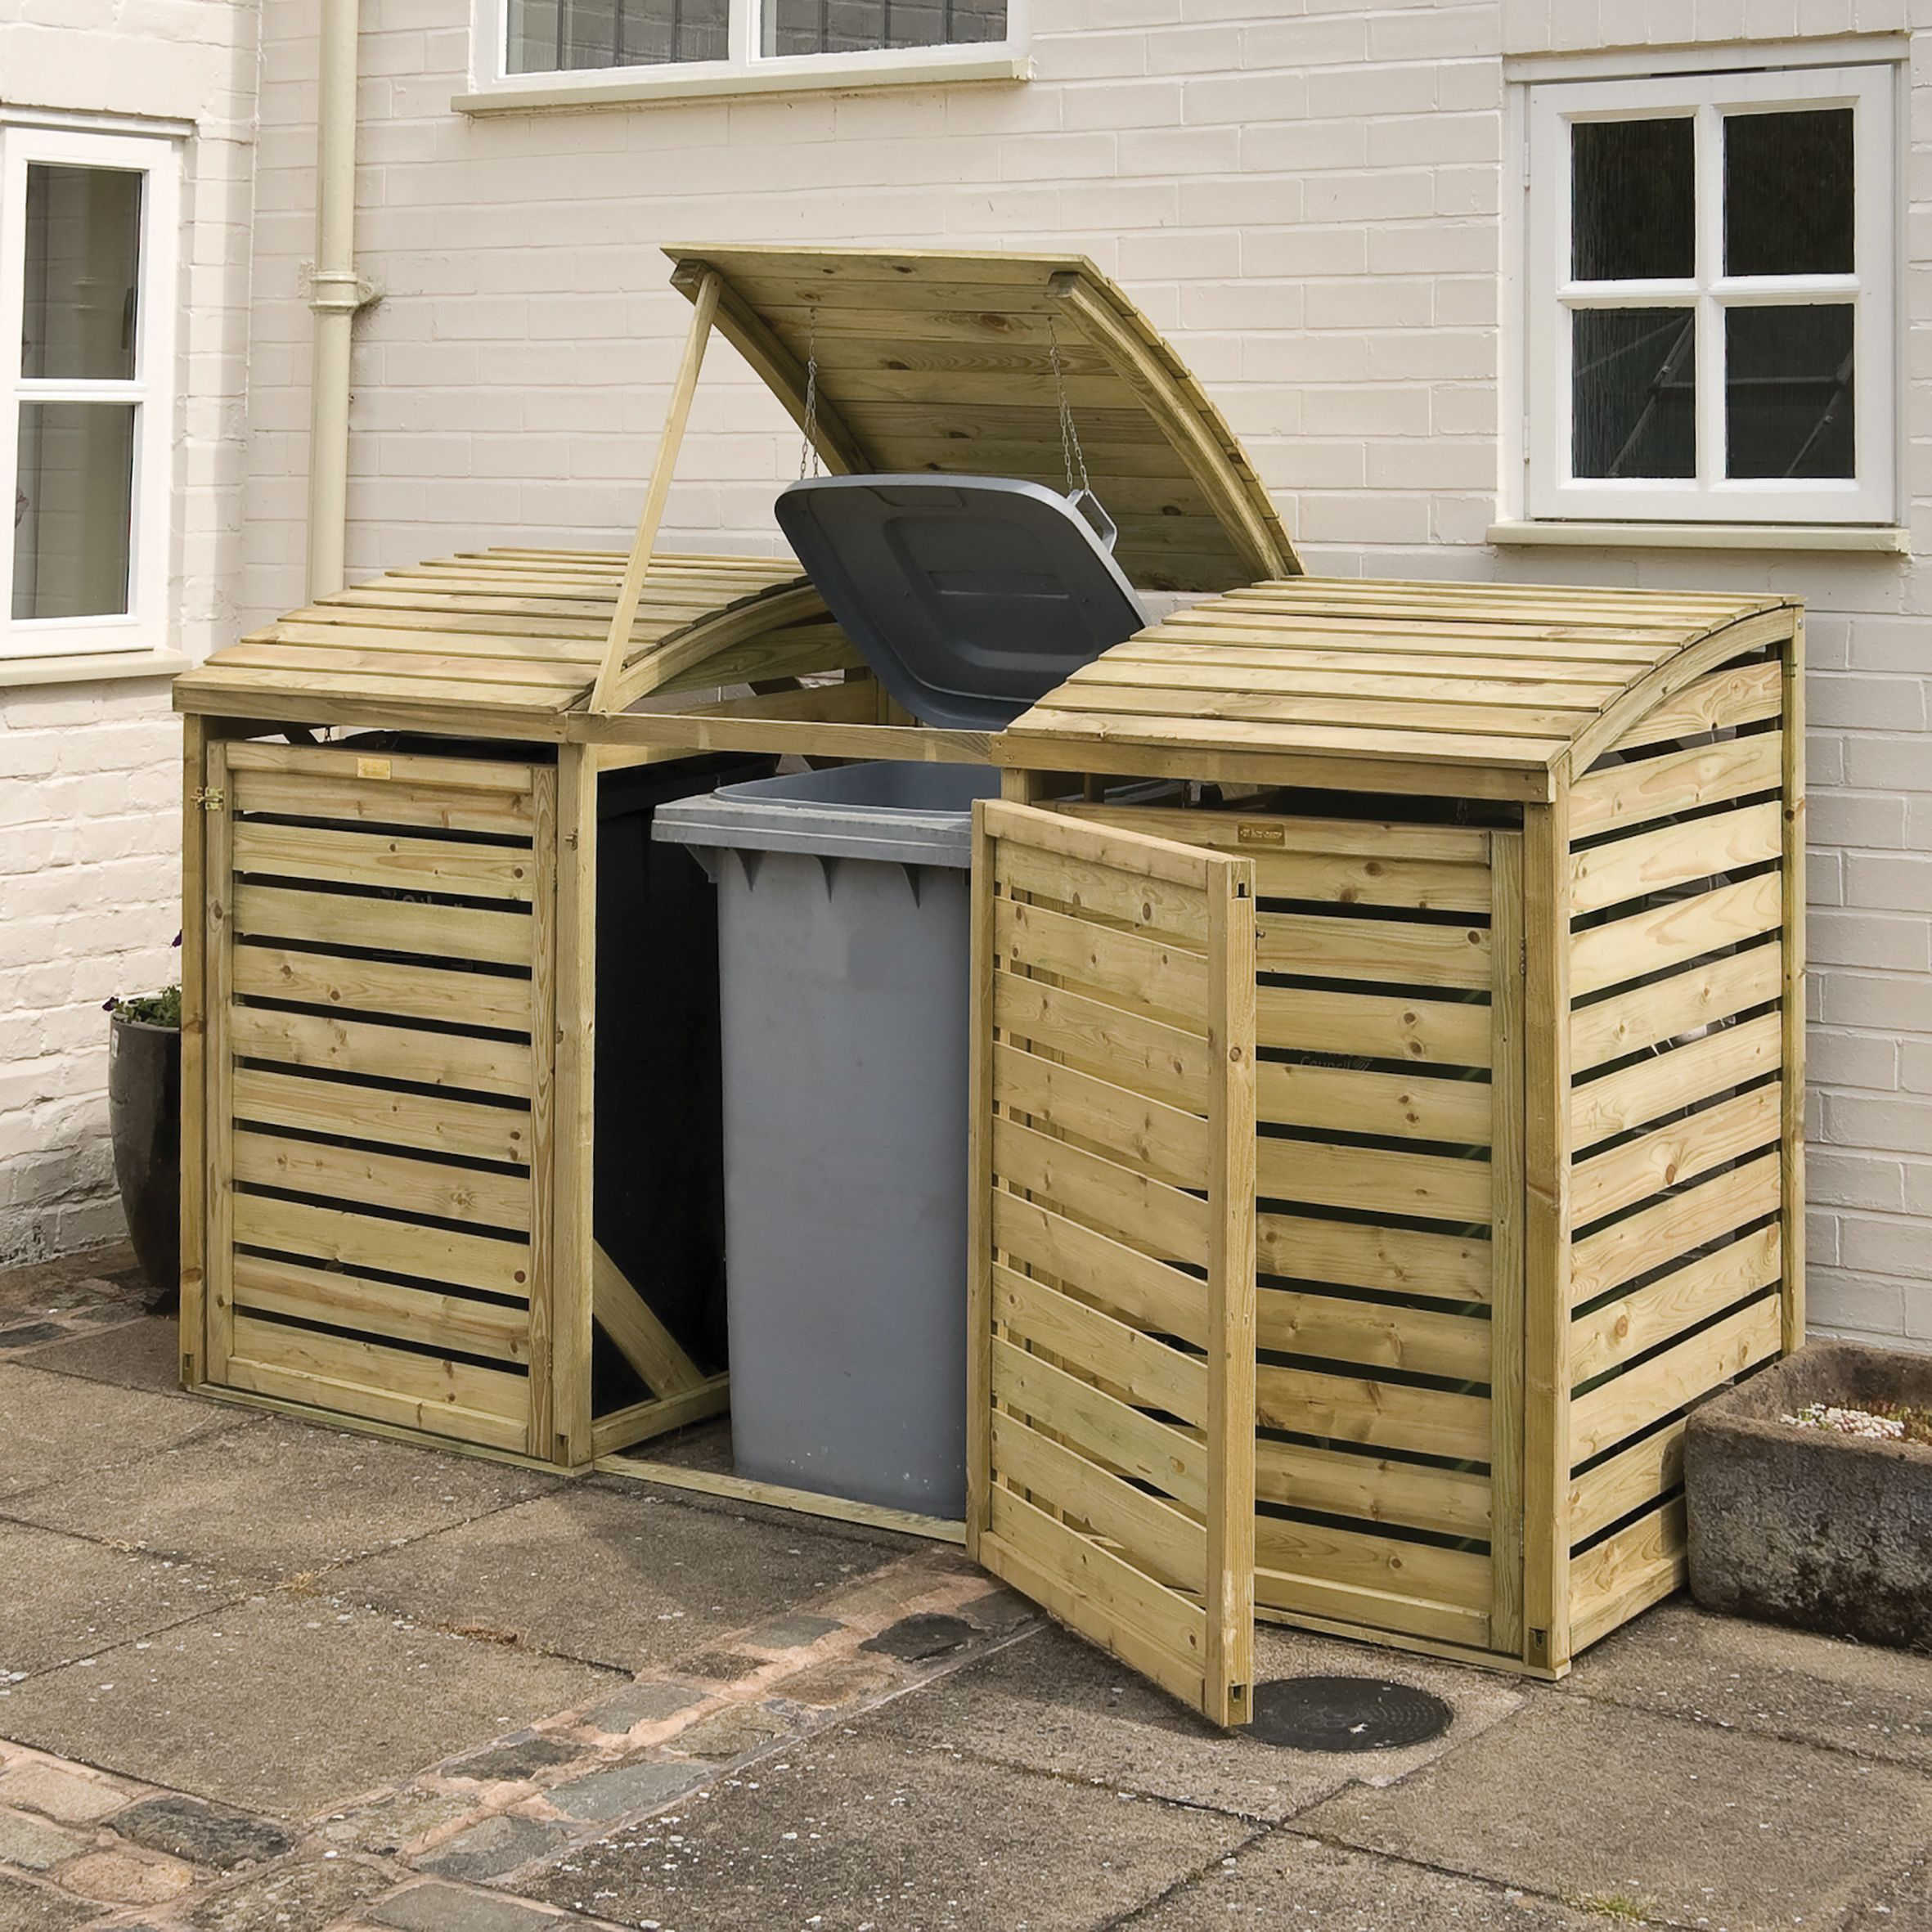 Rowlinson Timber Triple Wheelie Bin Store - 8 x 3 ft